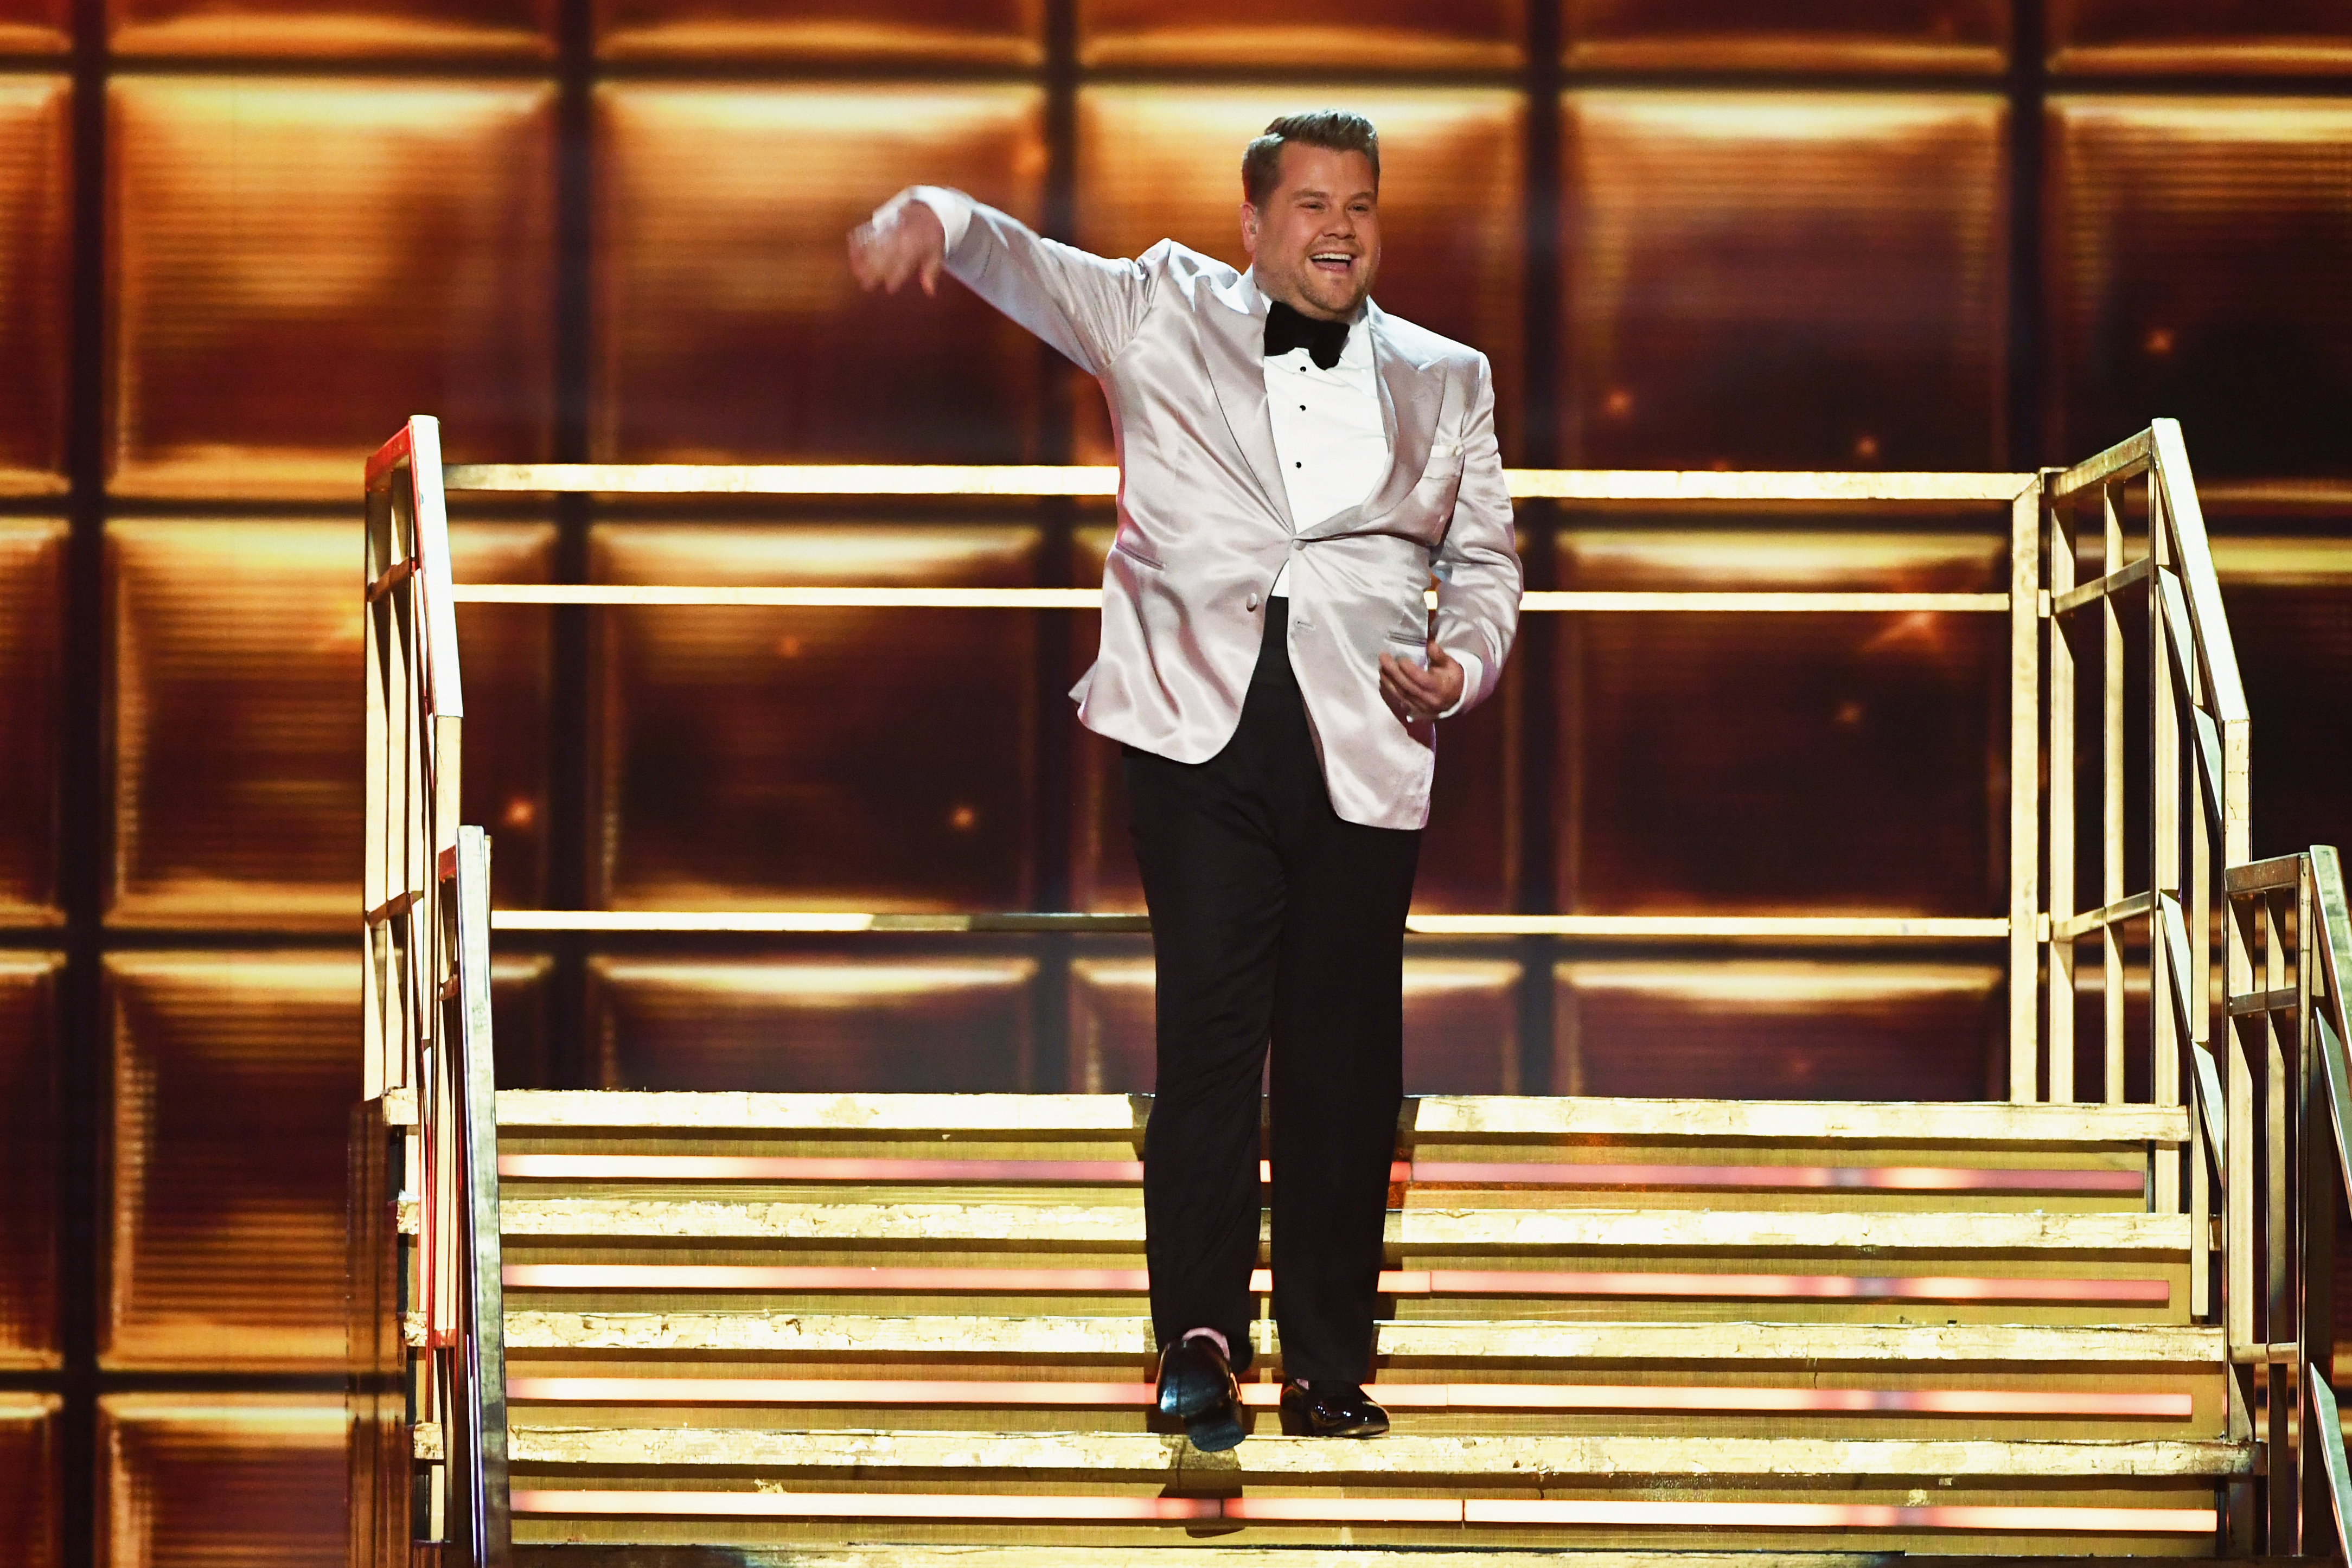 Host James Corden speaks onstage during The 59th GRAMMY Awards on Feb. 12, 2017 in Los Angeles, California.